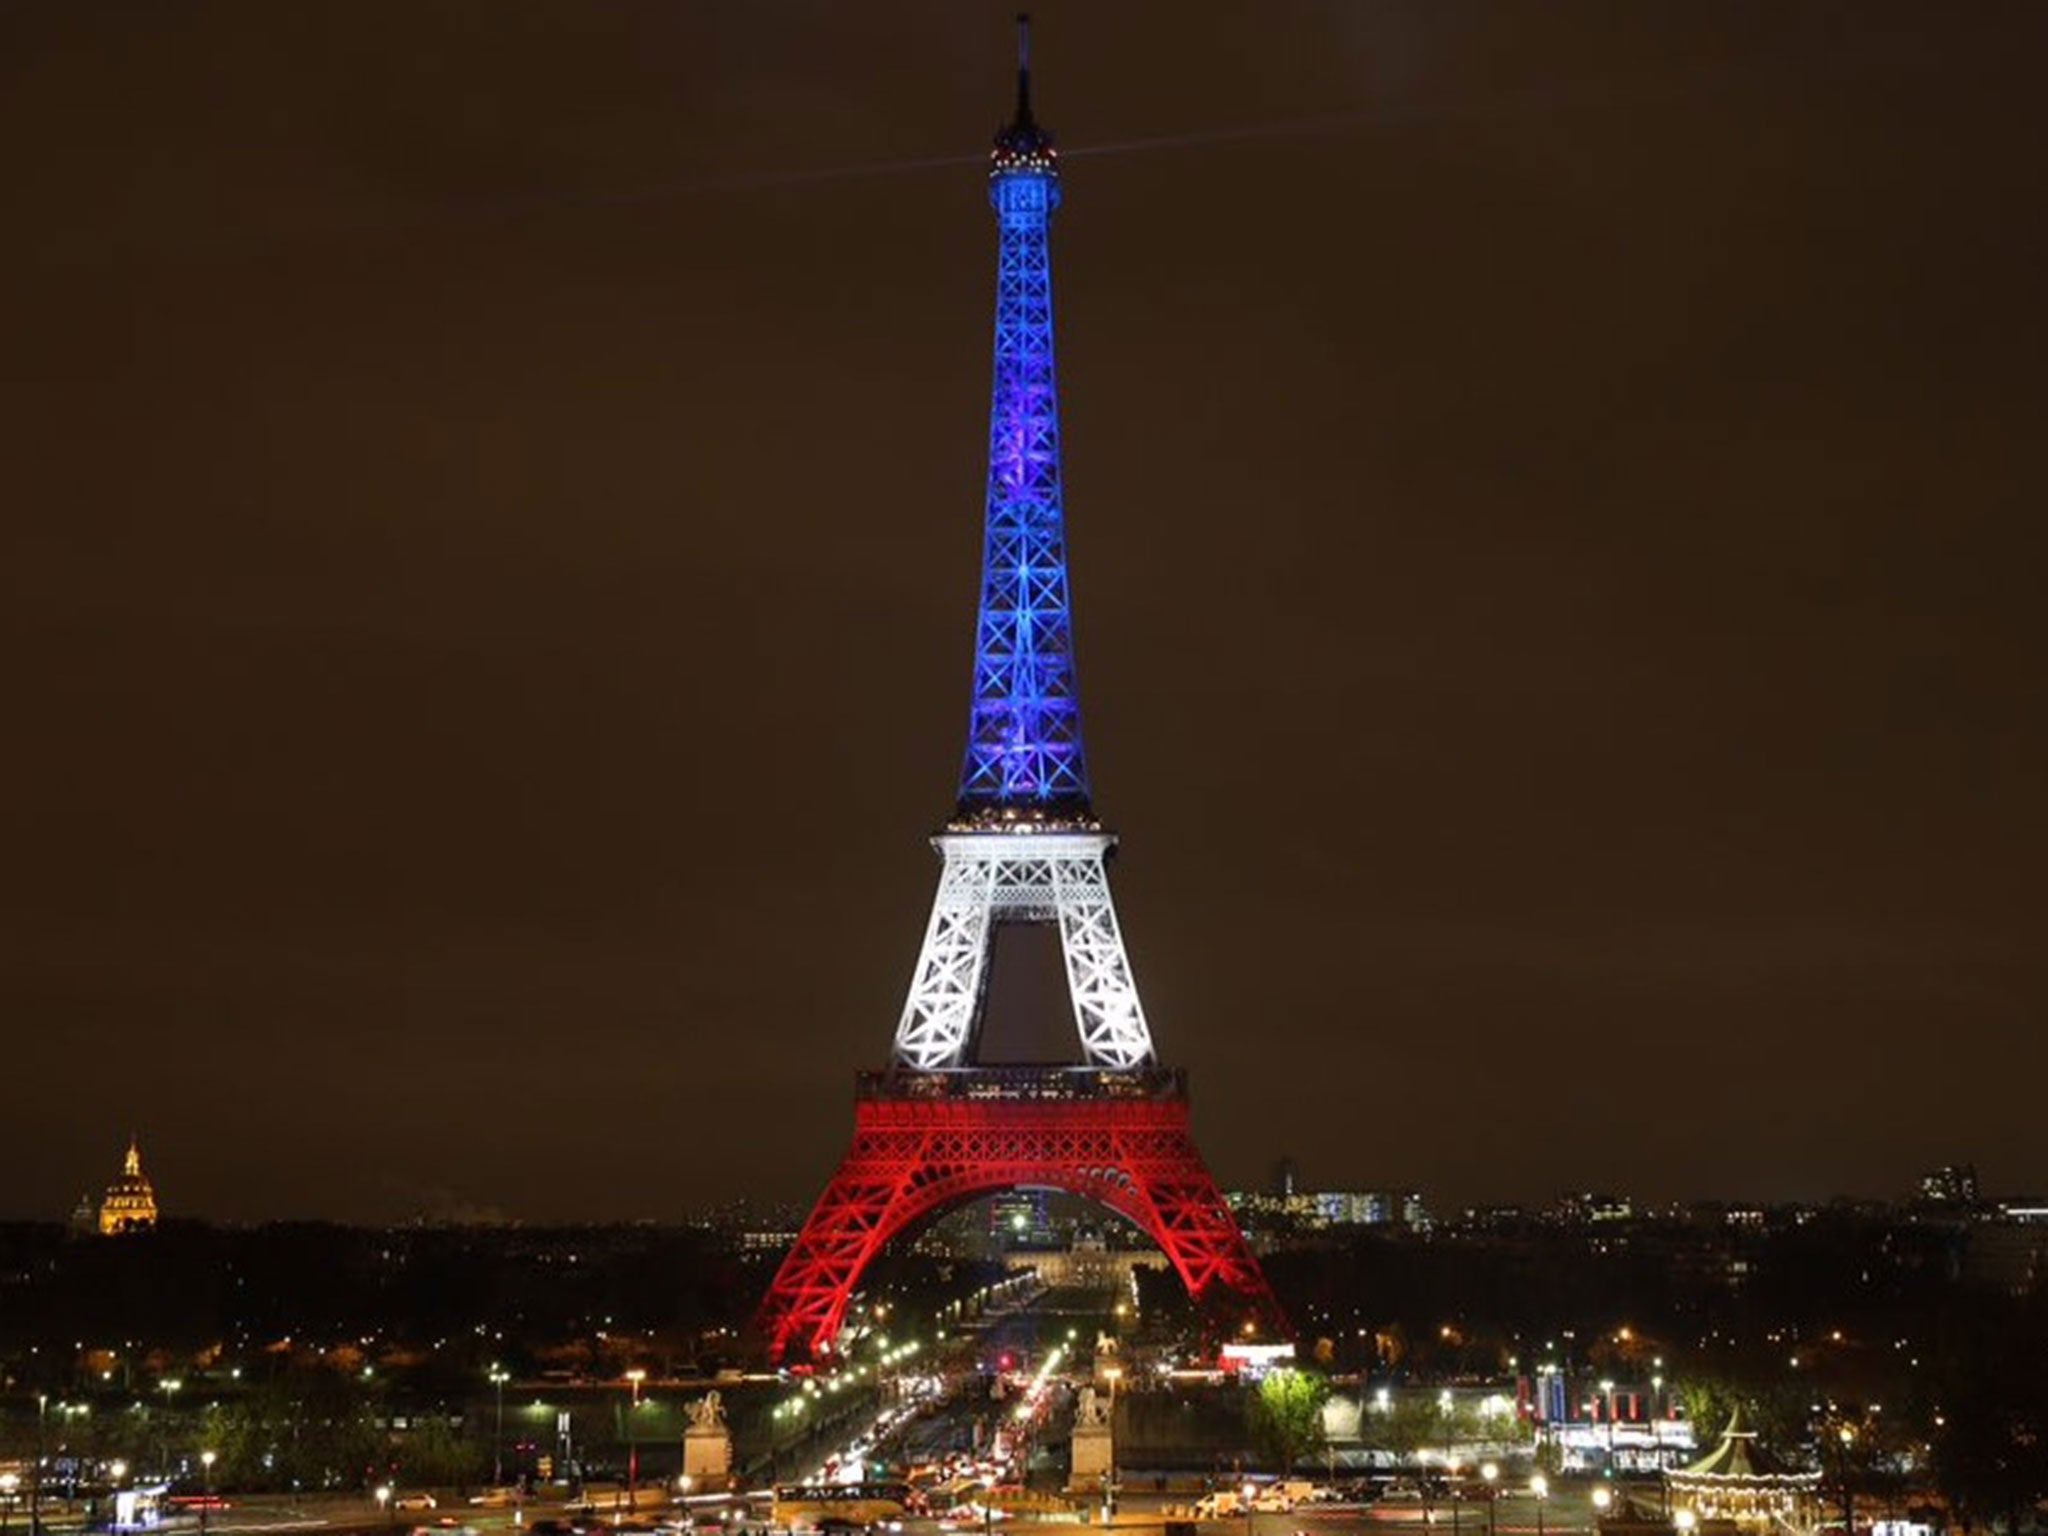 eiffel tower to be lit up with belgian flag colours 39 in solidarity 39 with brussels says paris. Black Bedroom Furniture Sets. Home Design Ideas